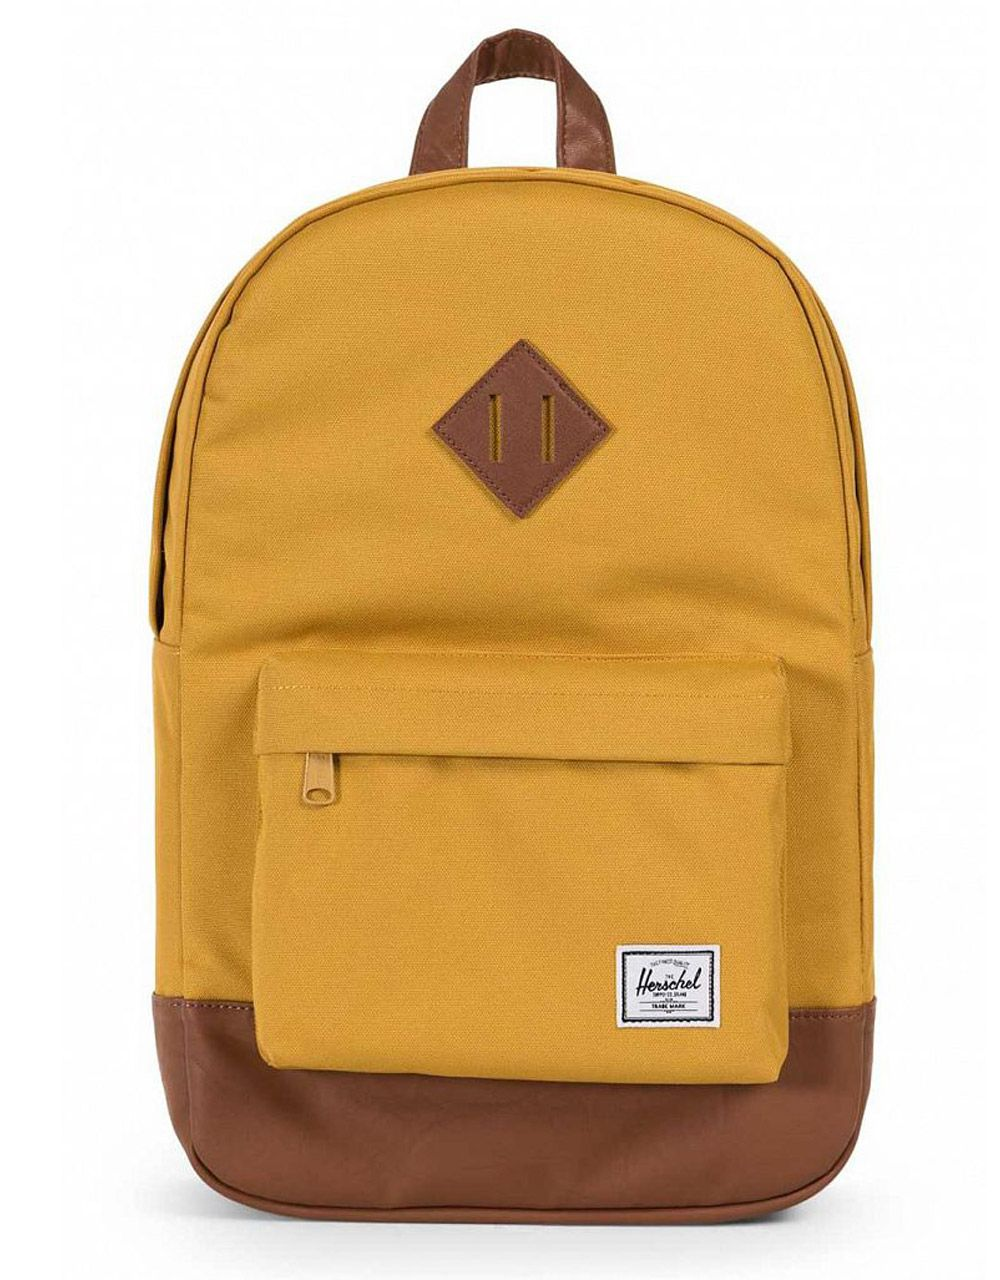 Рюкзак Herschel Heritage Mid-Volume Arrowwood/Tan Synthetic Leather, 14.5l